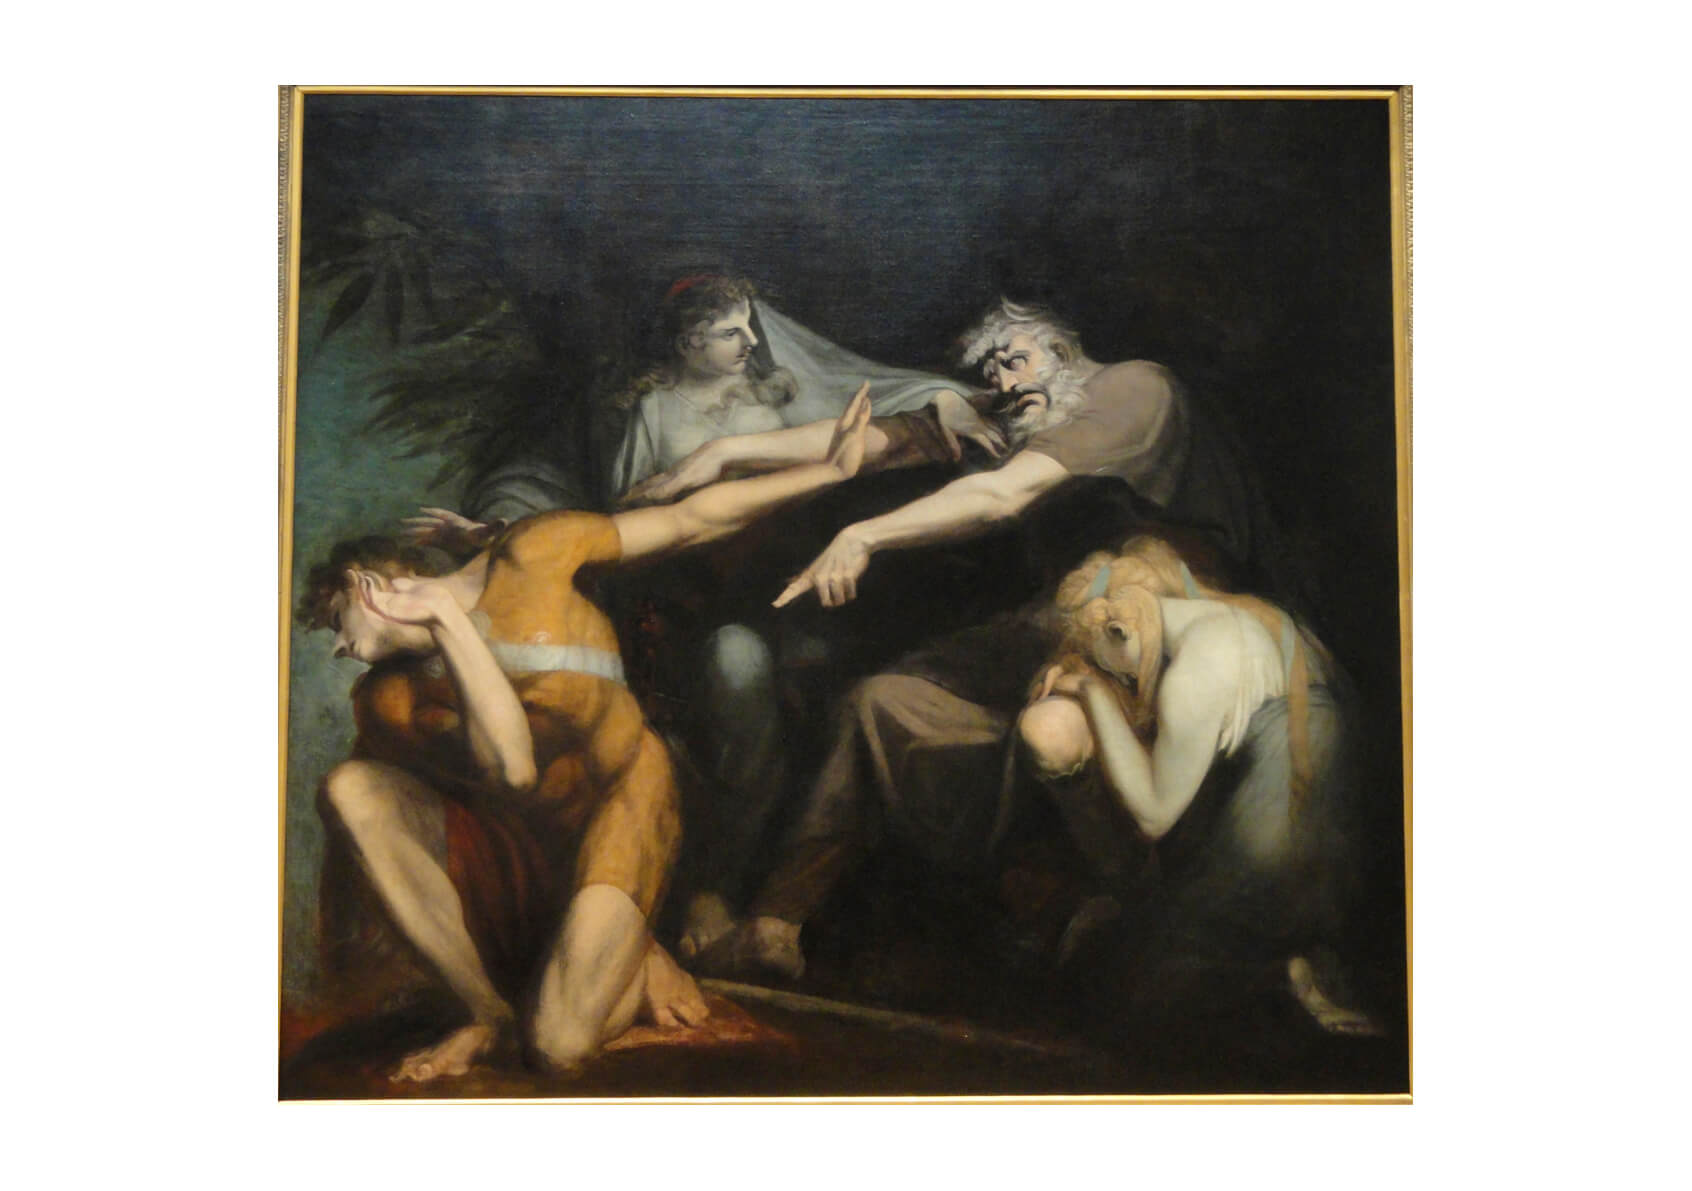 Henry Fuseli - Oedipus Cursing His Son Polynices